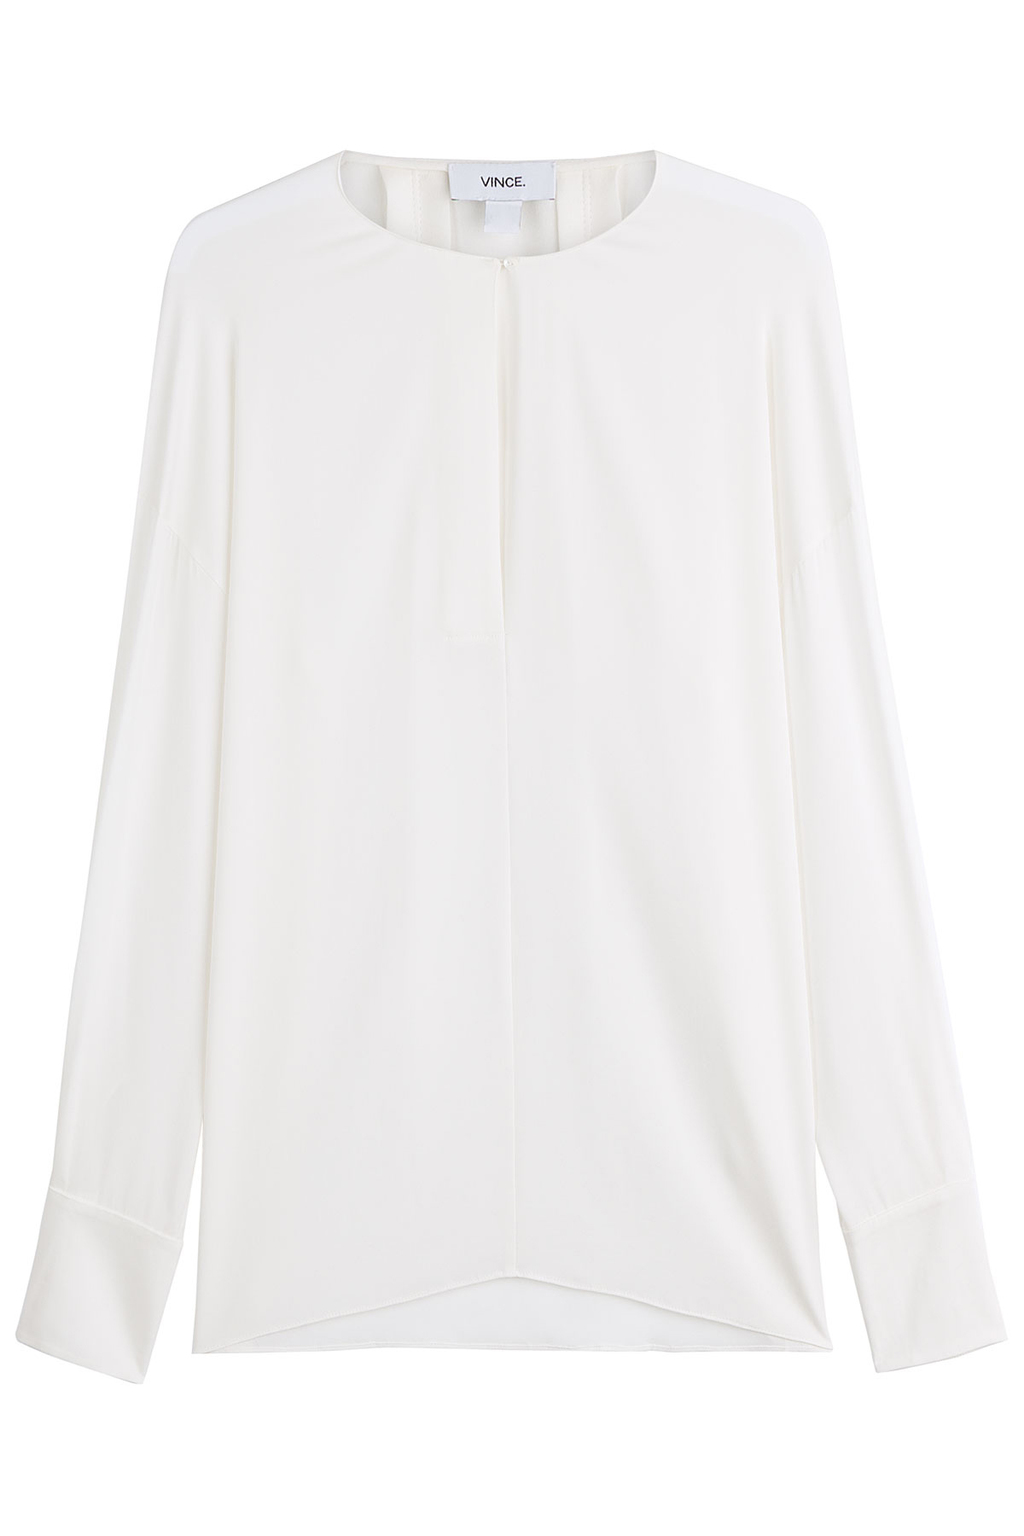 Silk Blouse White - pattern: plain; style: blouse; predominant colour: white; occasions: evening; length: standard; fibres: silk - 100%; fit: body skimming; neckline: crew; sleeve length: long sleeve; sleeve style: standard; texture group: silky - light; pattern type: fabric; season: s/s 2016; wardrobe: event